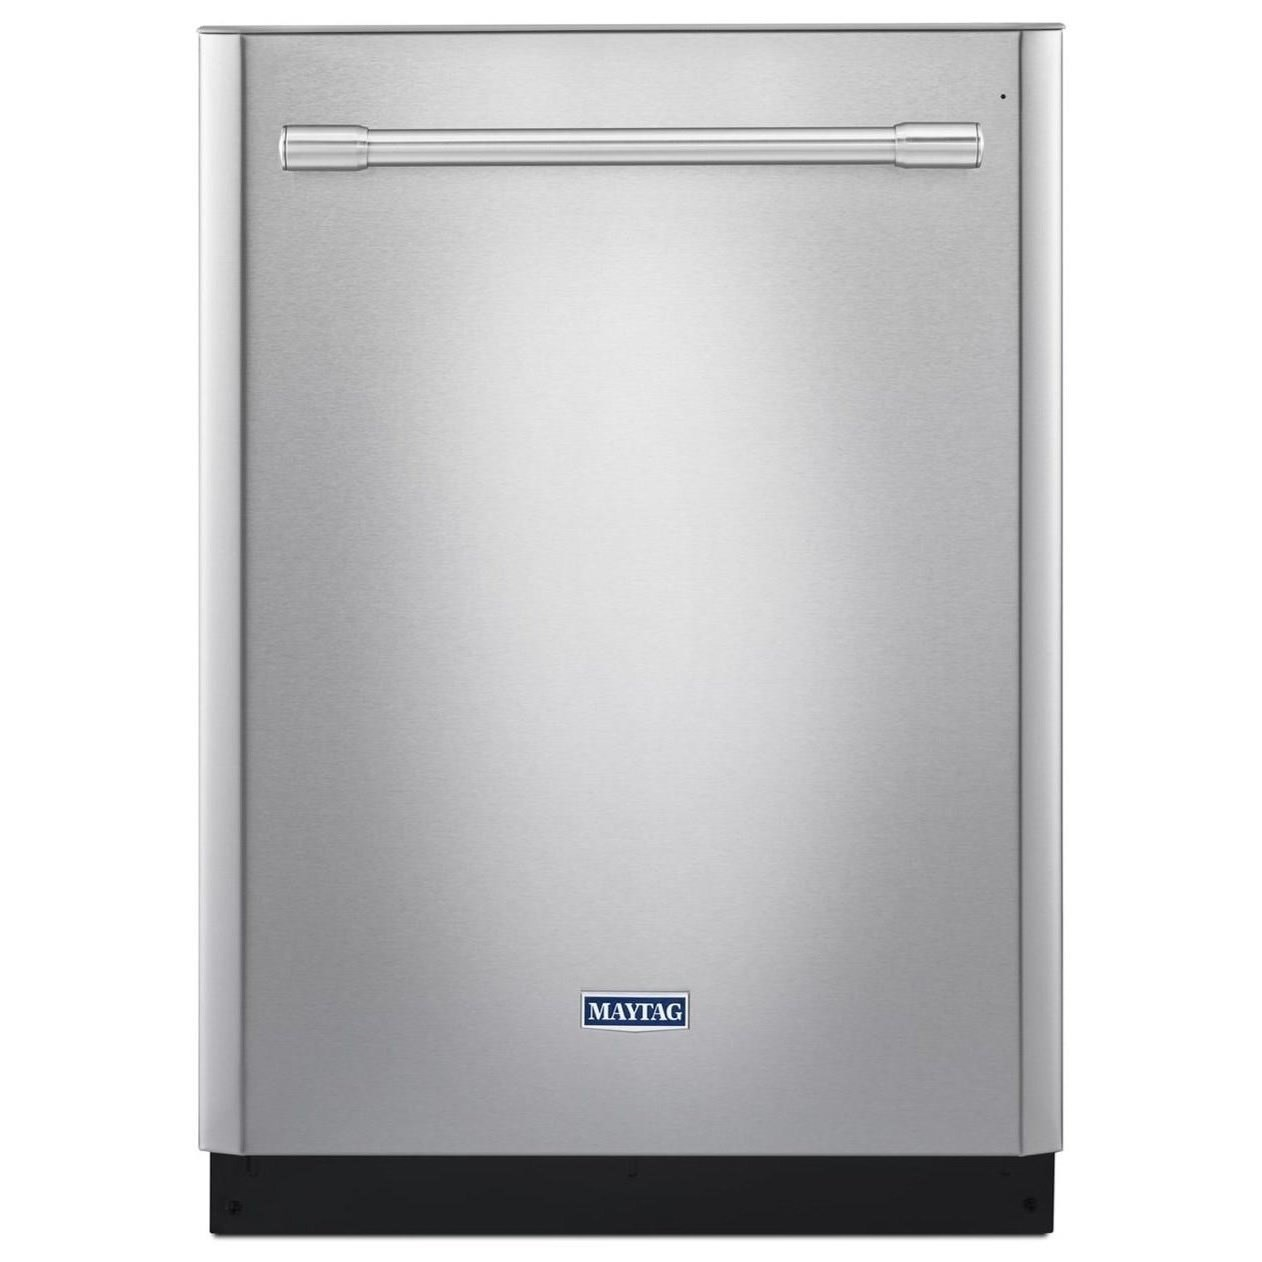 Built in Dishwashers 24-Inch Wide Top Control Dishwasher by Maytag at Wilcox Furniture